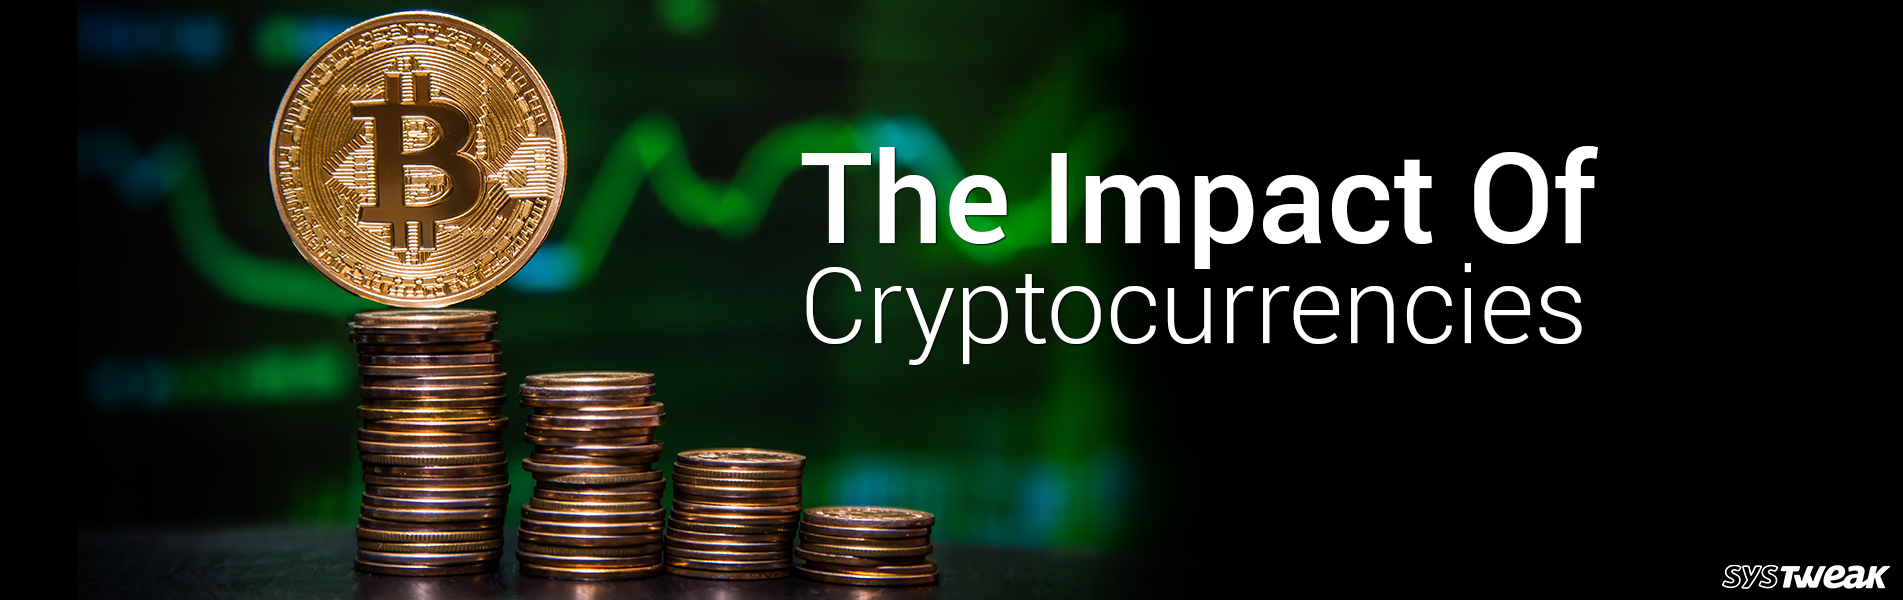 Impact Of Cryptocurrencies Over The World